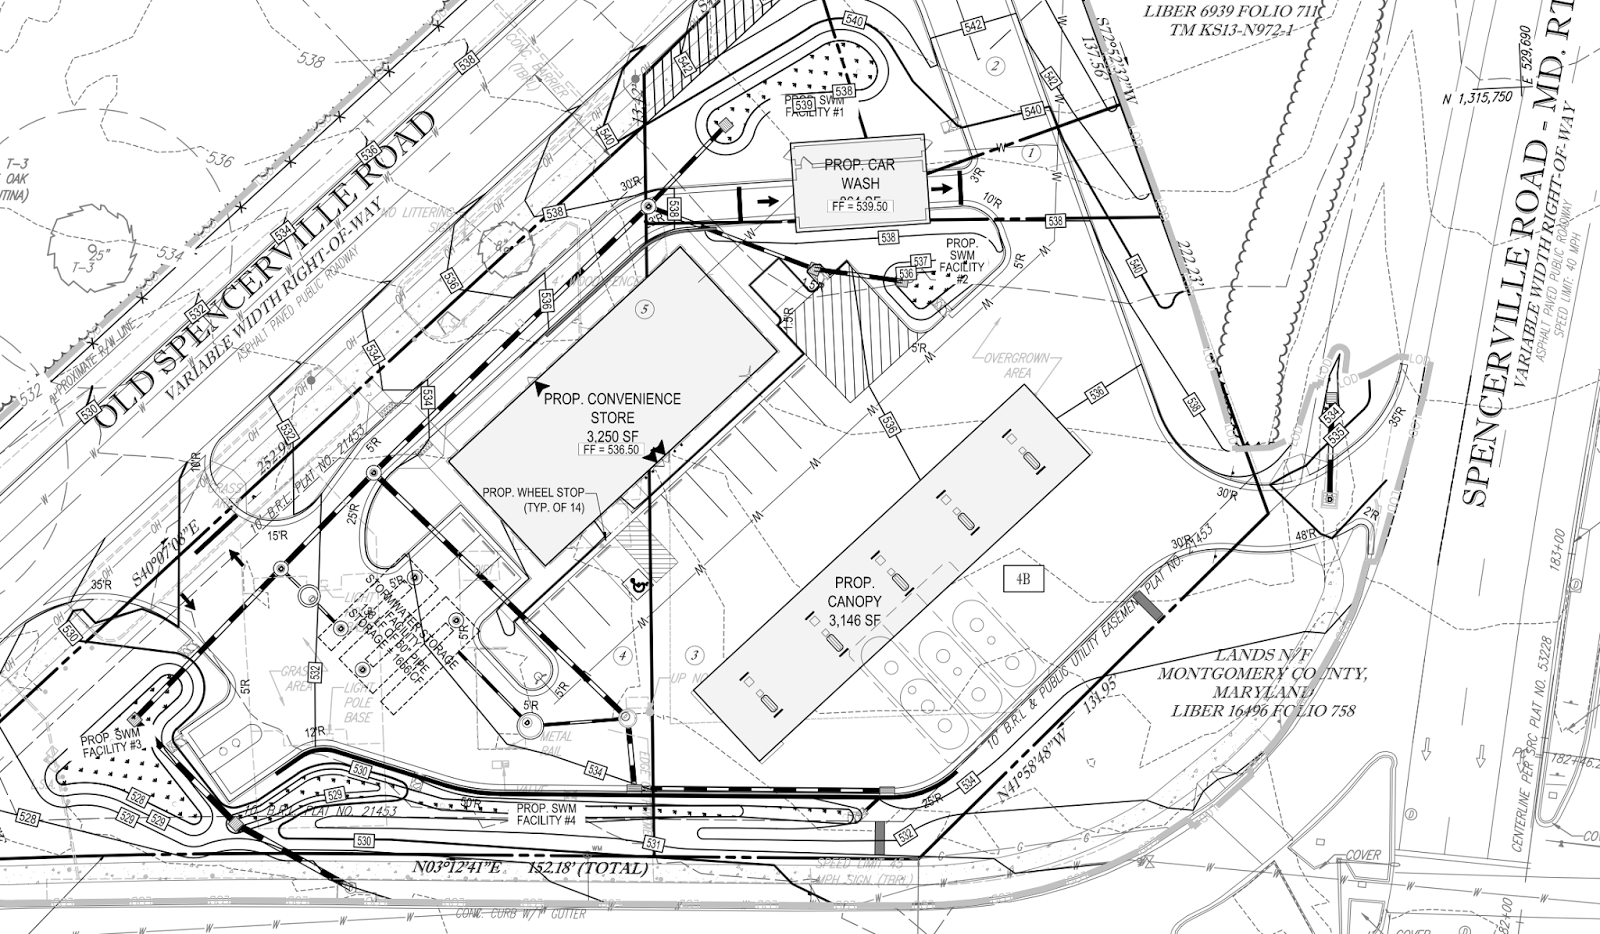 East moco 10 pump gas station car wash coming to silver spring the montgomery county planning board will consider the pmg application at its september 3 meeting planning staff is recommending approval with conditions malvernweather Images